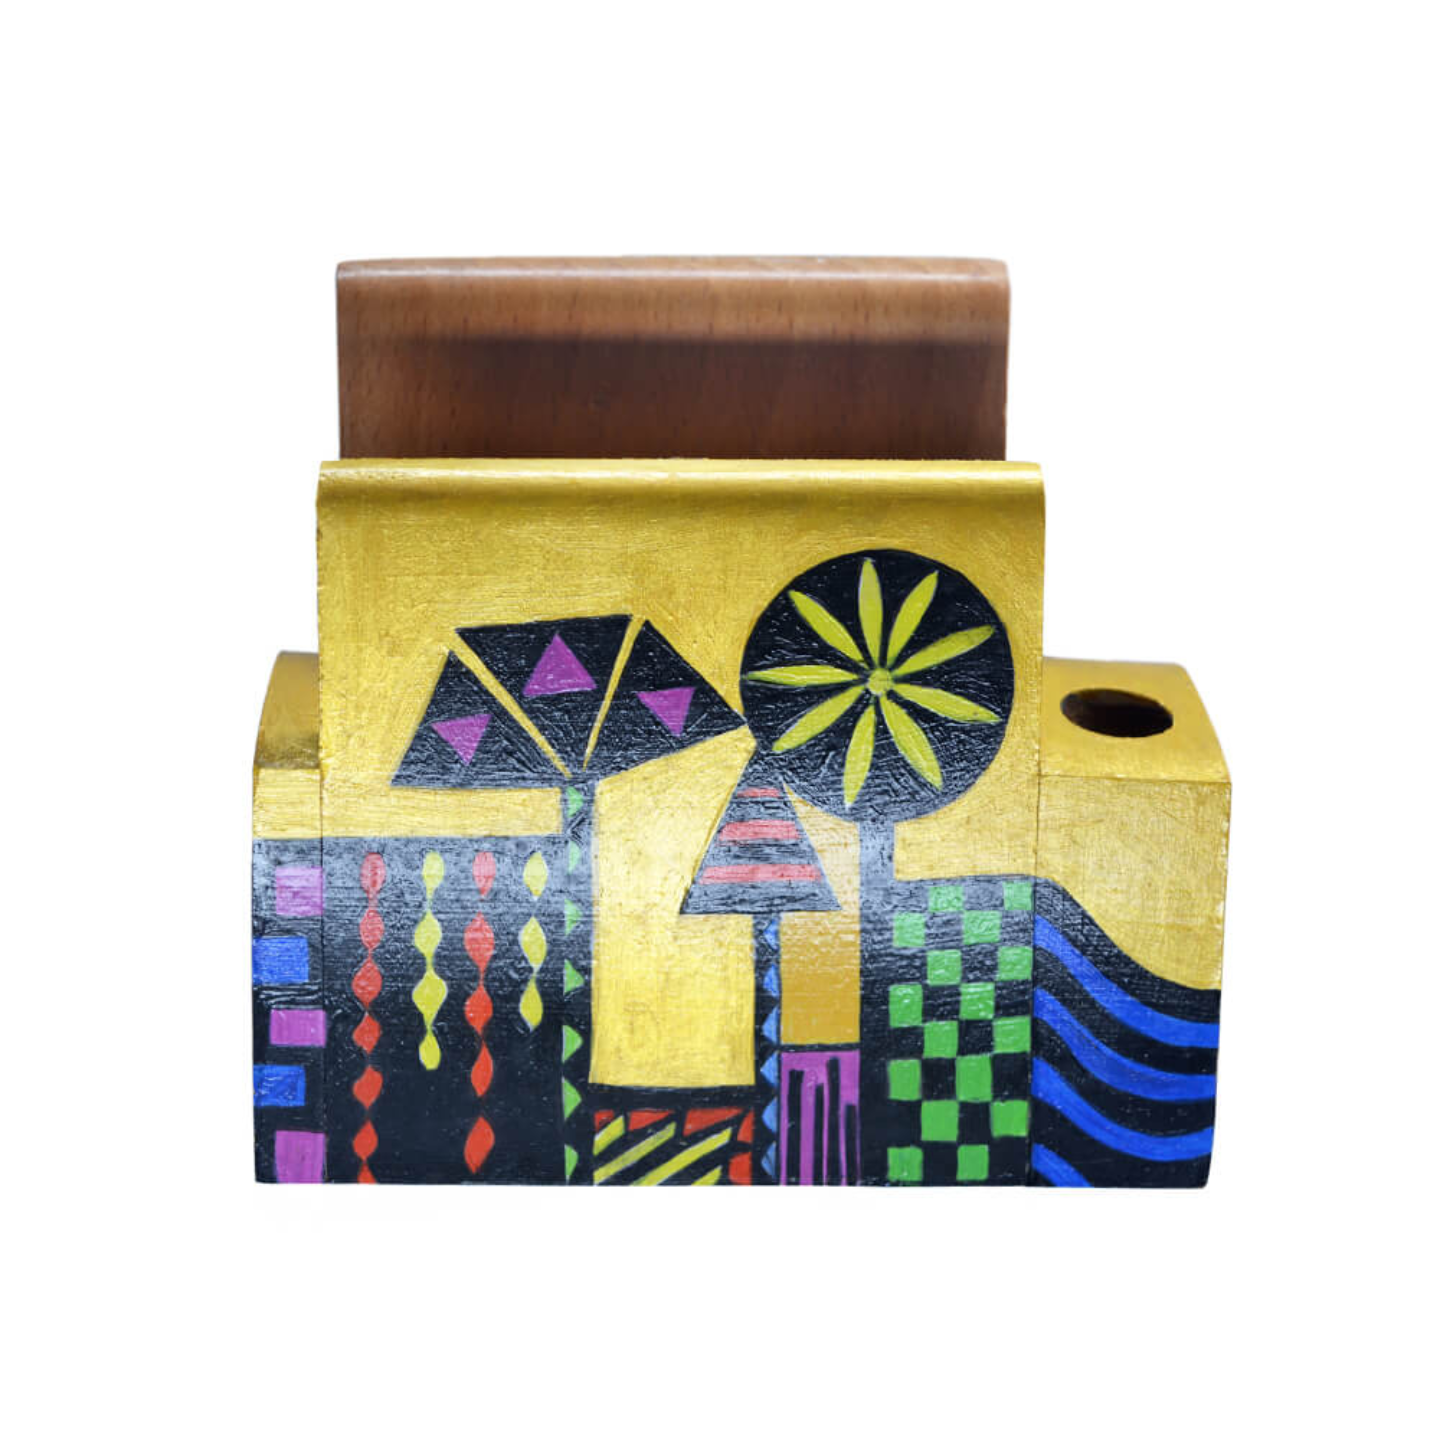 Pen and mobile stand with geometrical colourful design